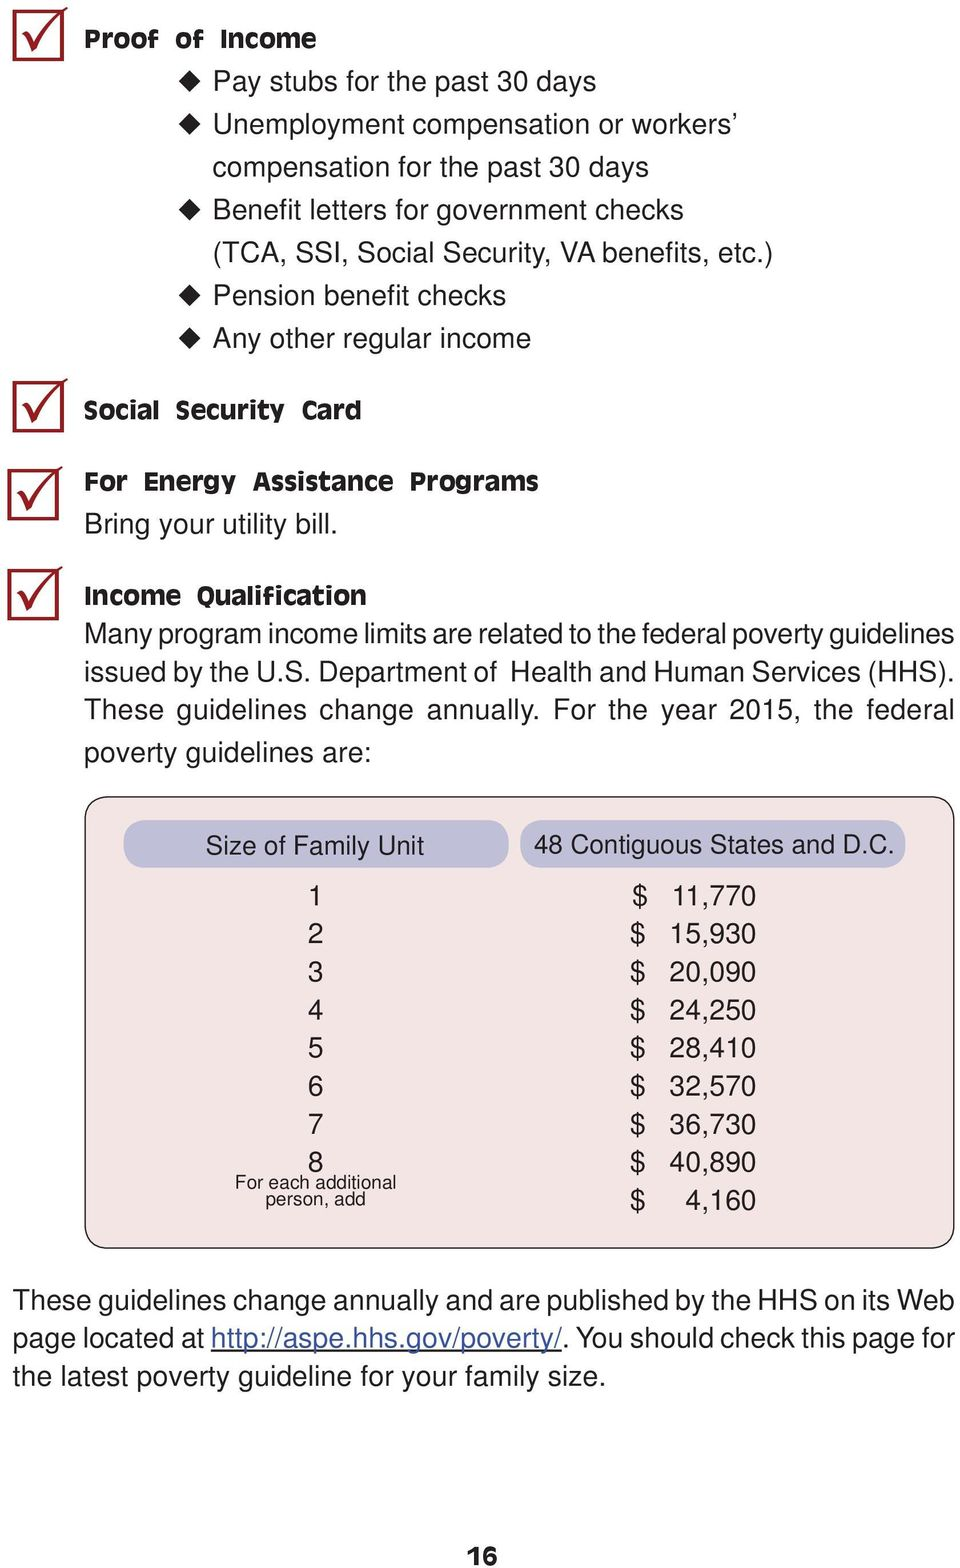 Income Qualification Many program income limits are related to the federal poverty guidelines issued by the U.S. Department of Health and Human Services (HHS). These guidelines change annually.